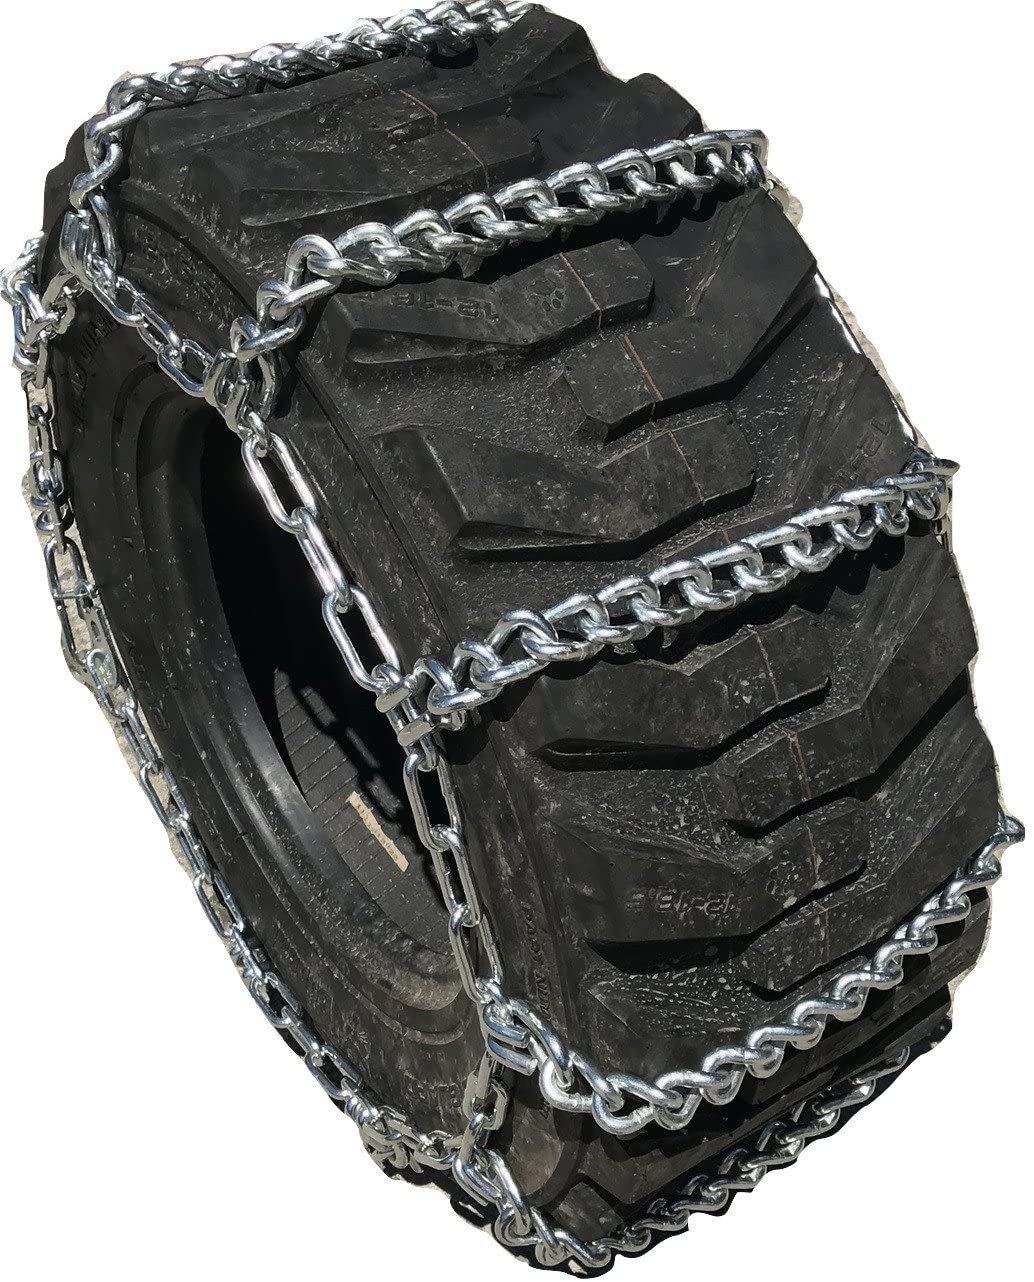 TireChain.com Compatible with Kioti NX5010 HST R4 Front 10-16.5 Tire Chains